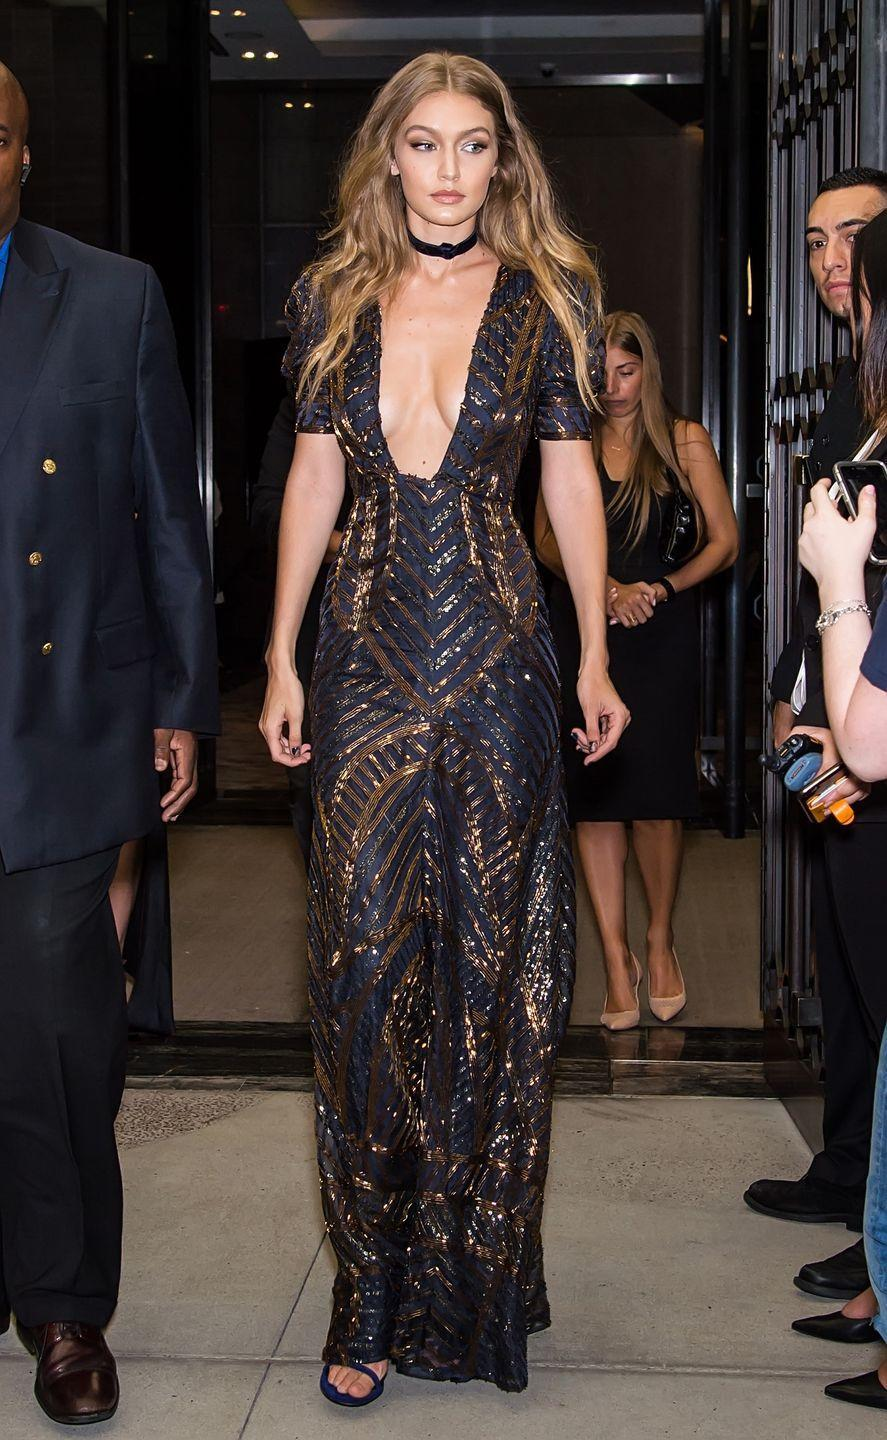 <p>In a plunging Tommy Hilfiger gown, Stuart Weitzman heeled sandals and a velvety choker at the Daily Front Row Fashion Media Awards.</p>